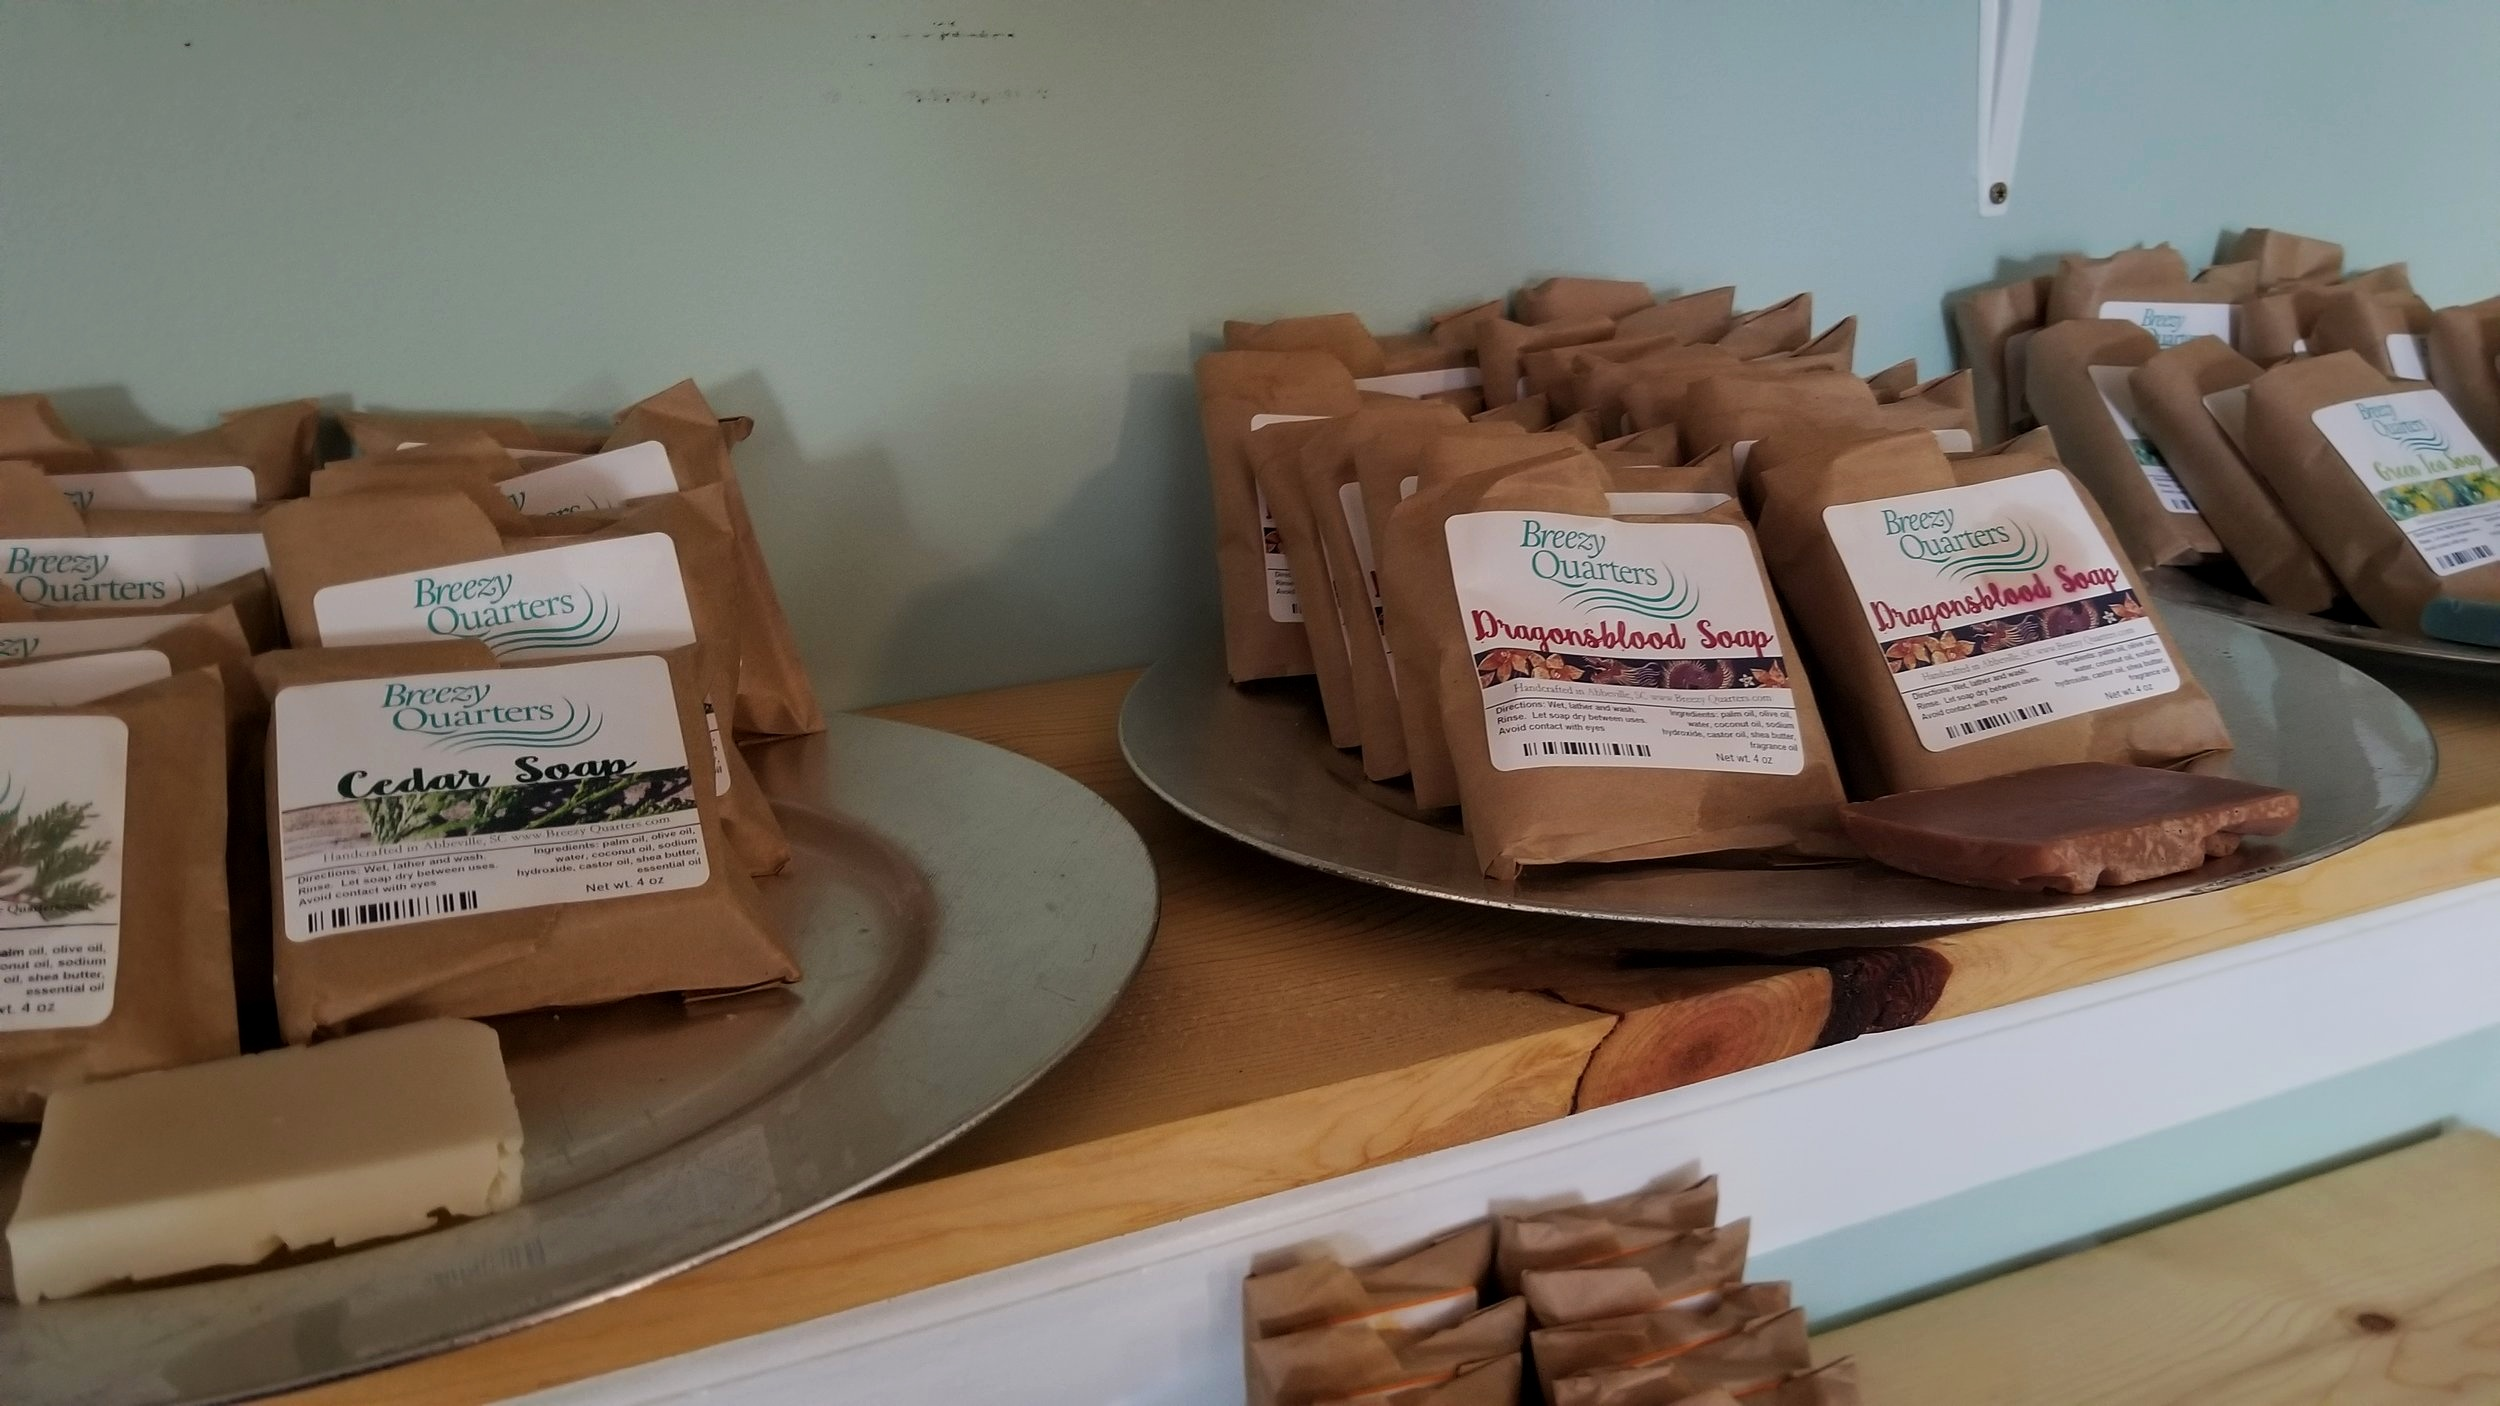 """Breezy Quarters Soap and Bath Factory features a wide assortment of hand made soaps, candles and other all natural products including a patented """"no melt"""" lip balm."""